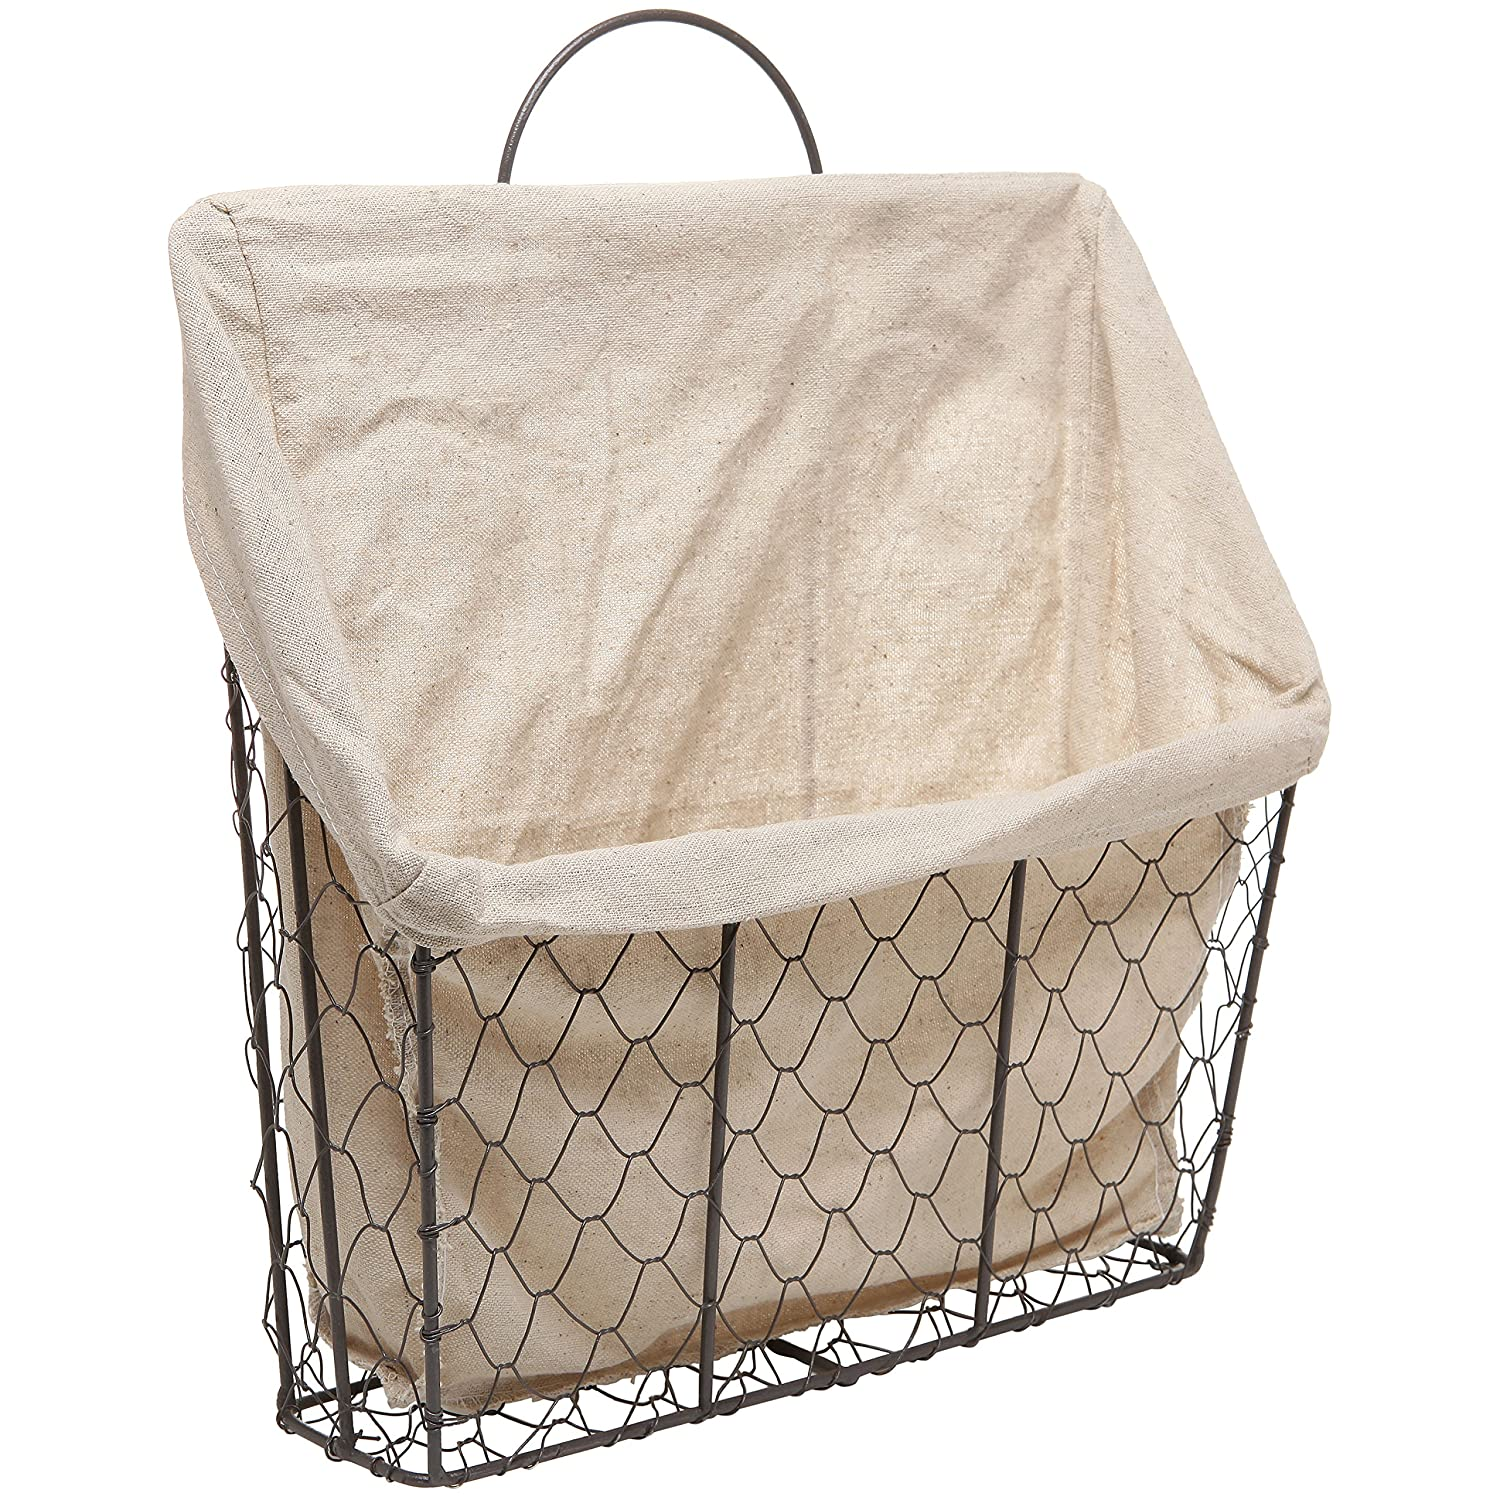 Country Rustic Wall Mounted Metal Wire Hanging Magazine / Mail Storage Basket Bin w/ Beige Linen Fabric MyGift TB-HOM0172BEI